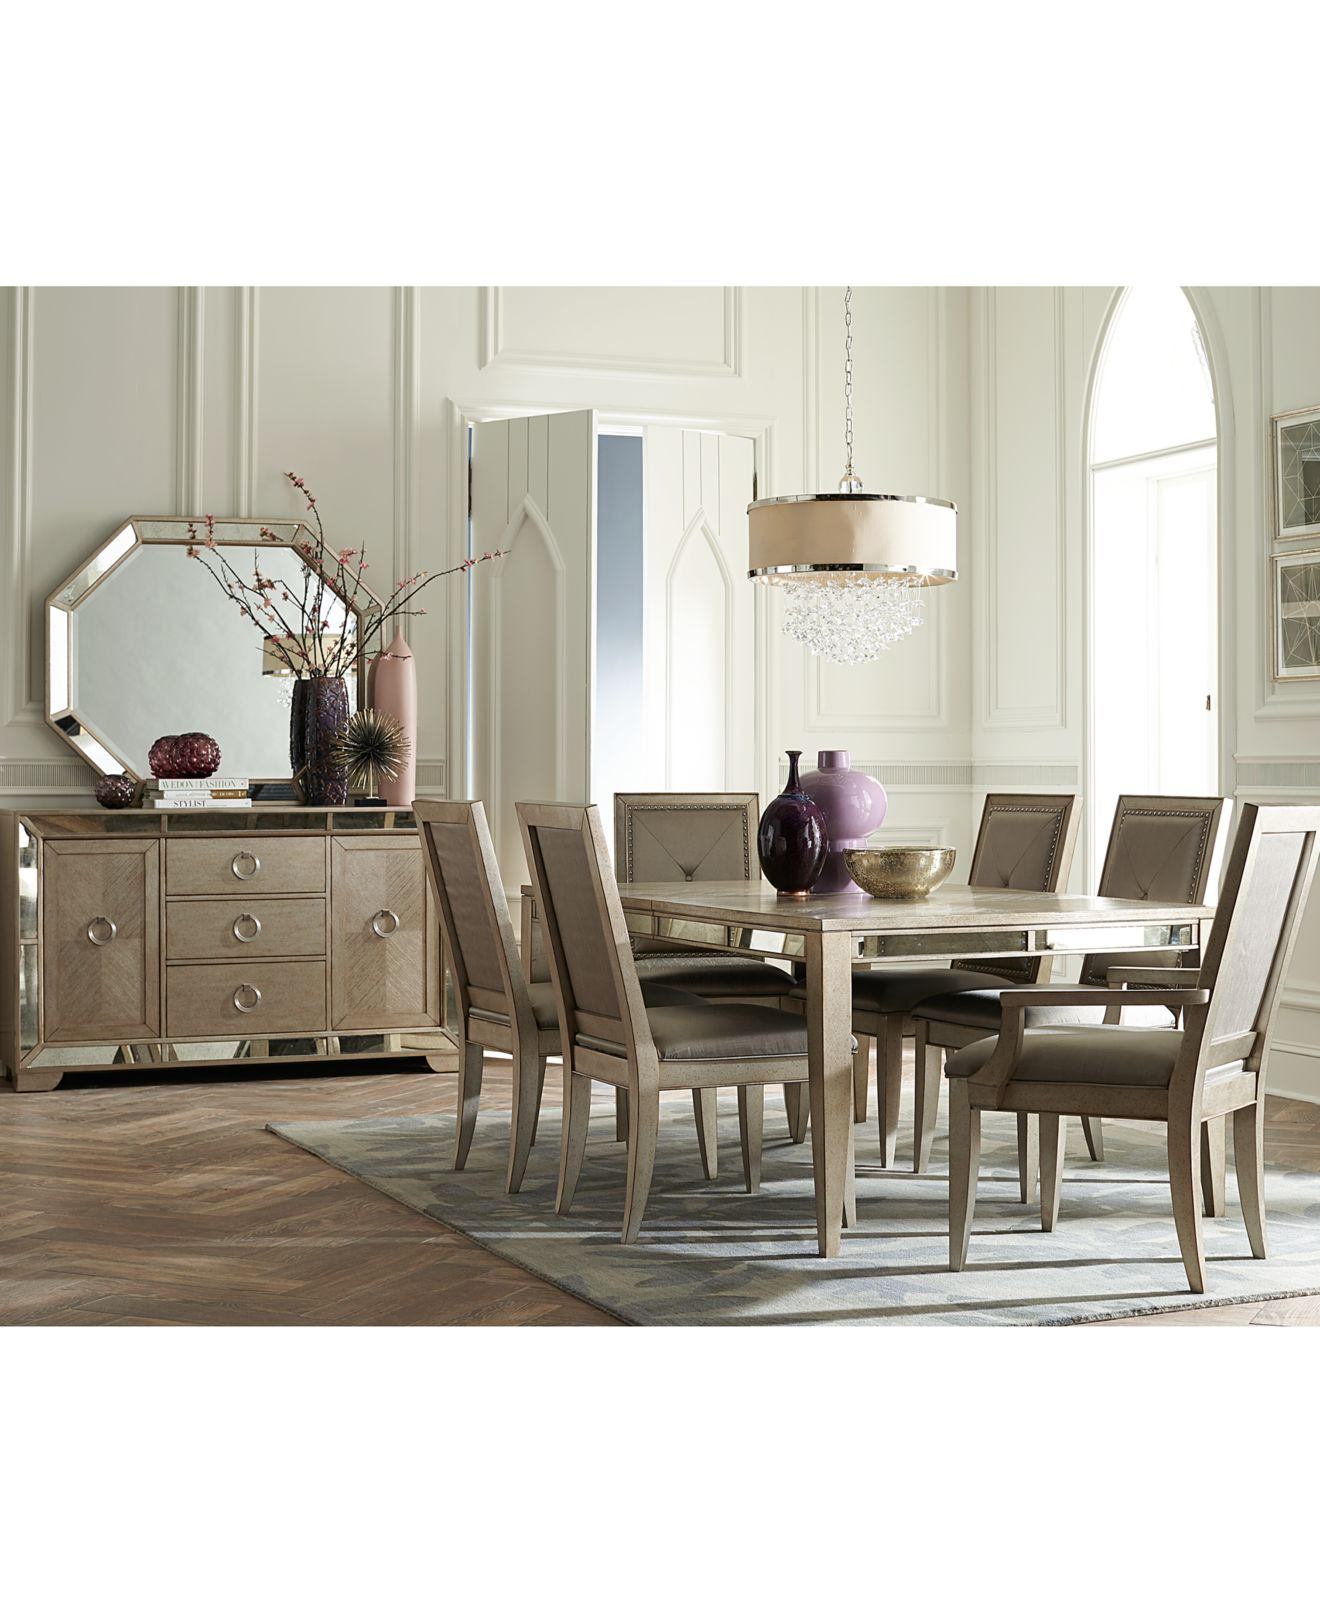 Macys Dining Room Sets Enchanting 67 Best Macys Furniture  : 2671542fpx from crazycakes.biz size 1320 x 1616 jpeg 333kB